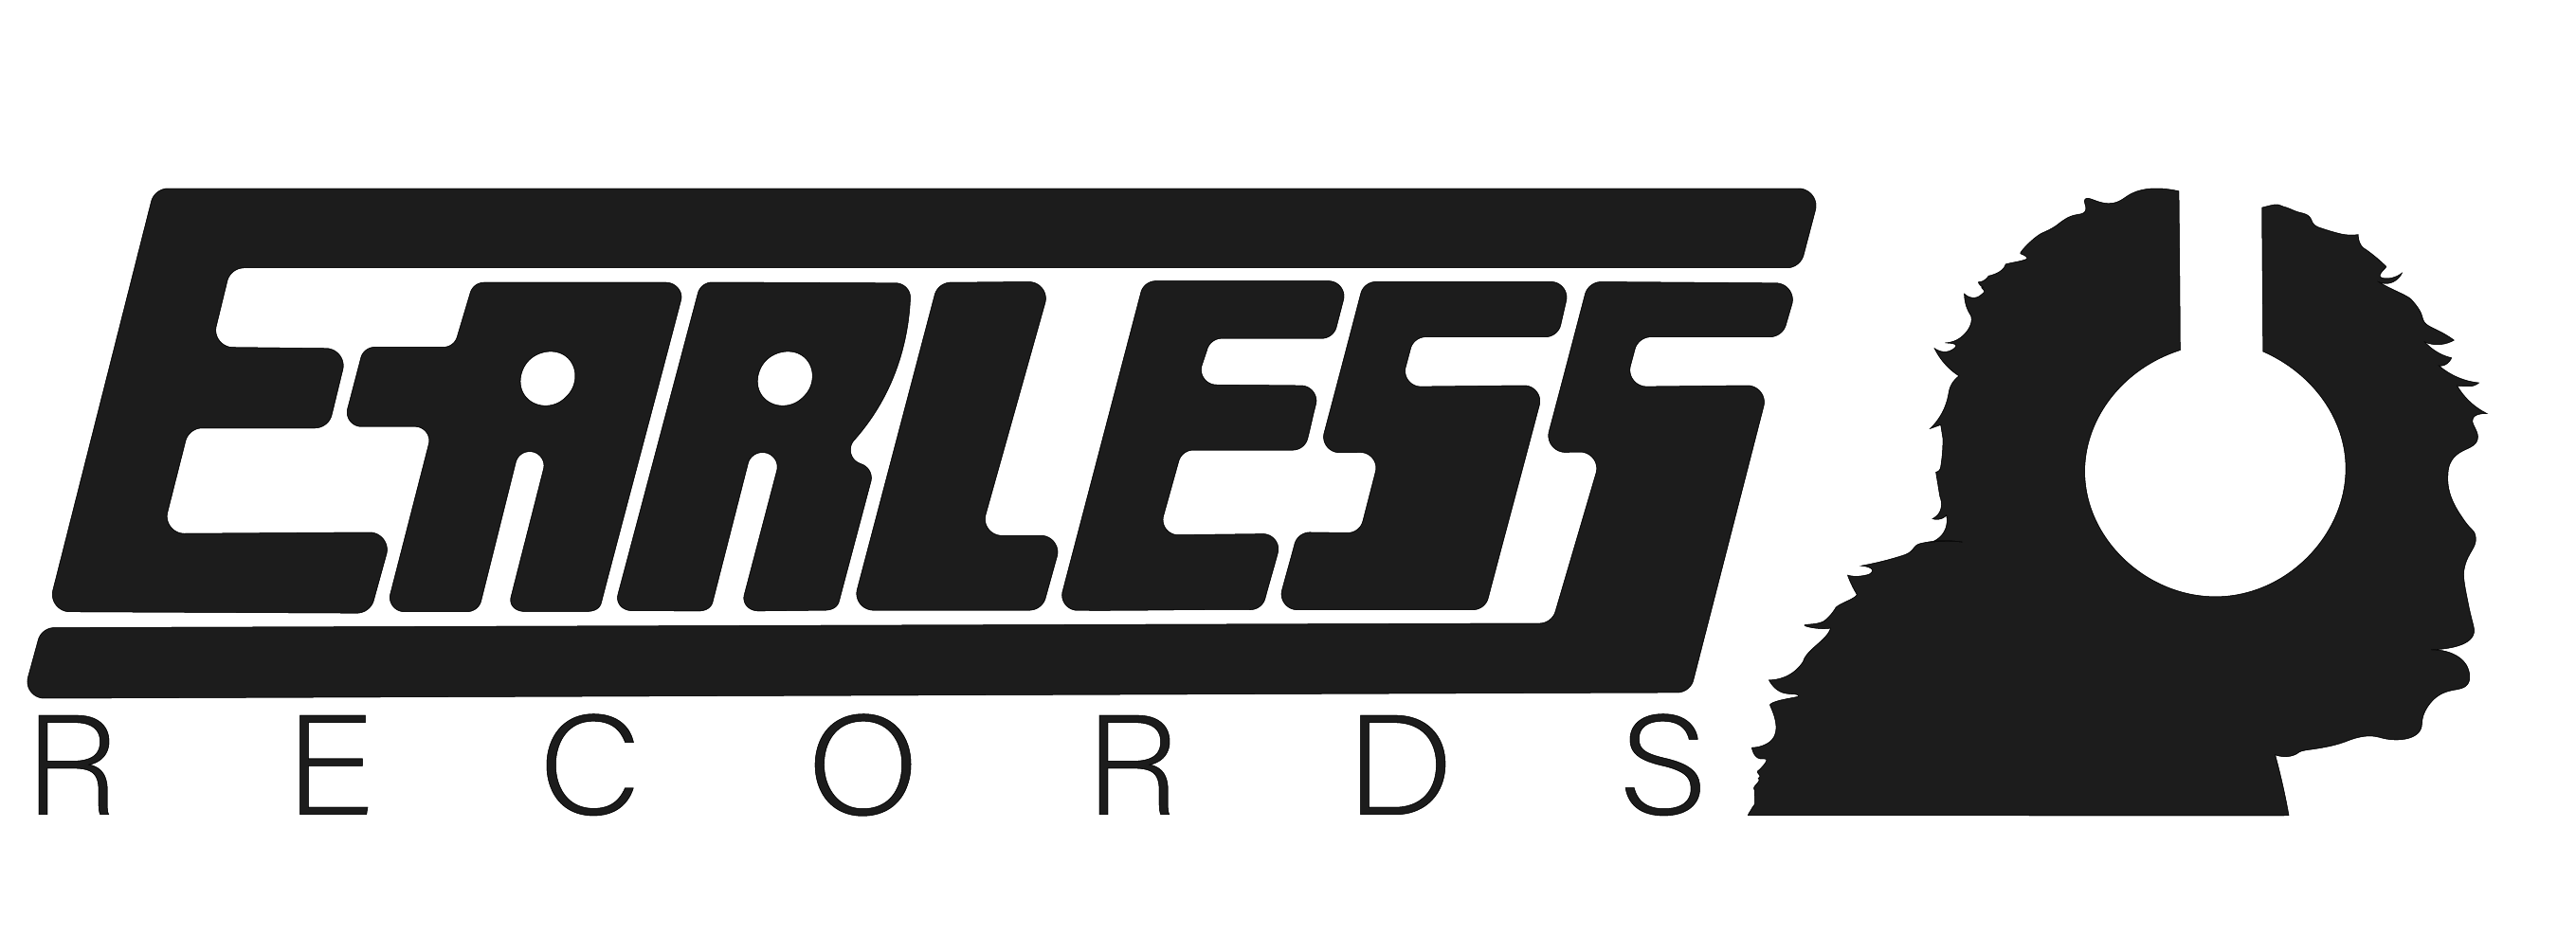 Earlessrecords